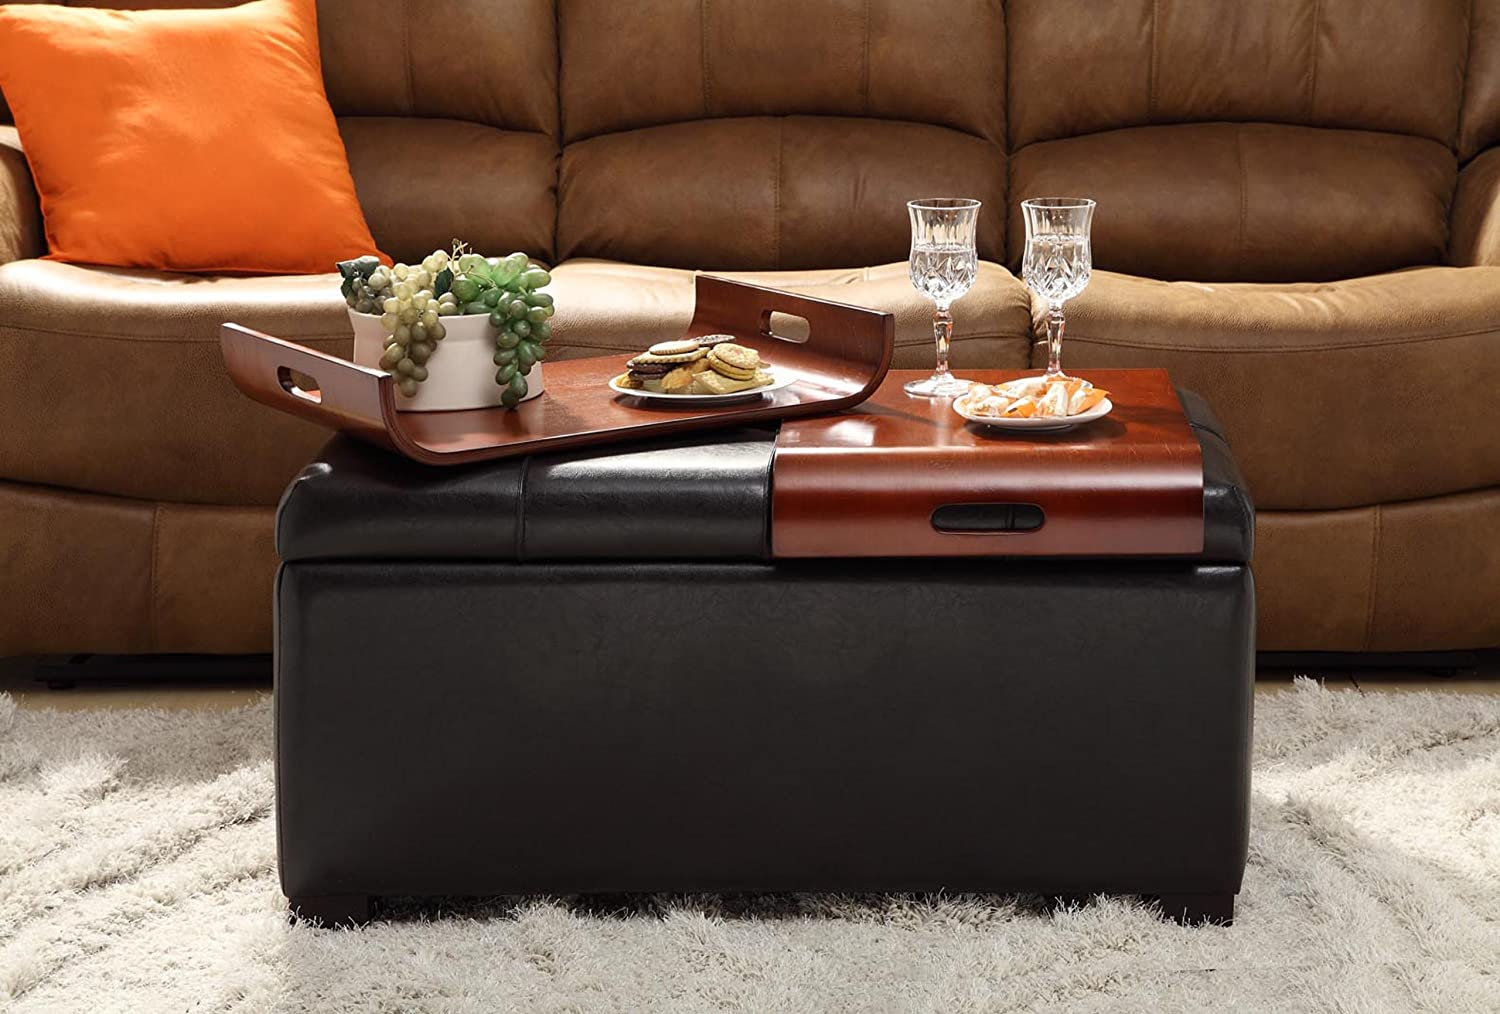 Ottoman with Trays - Check Amazon's Price